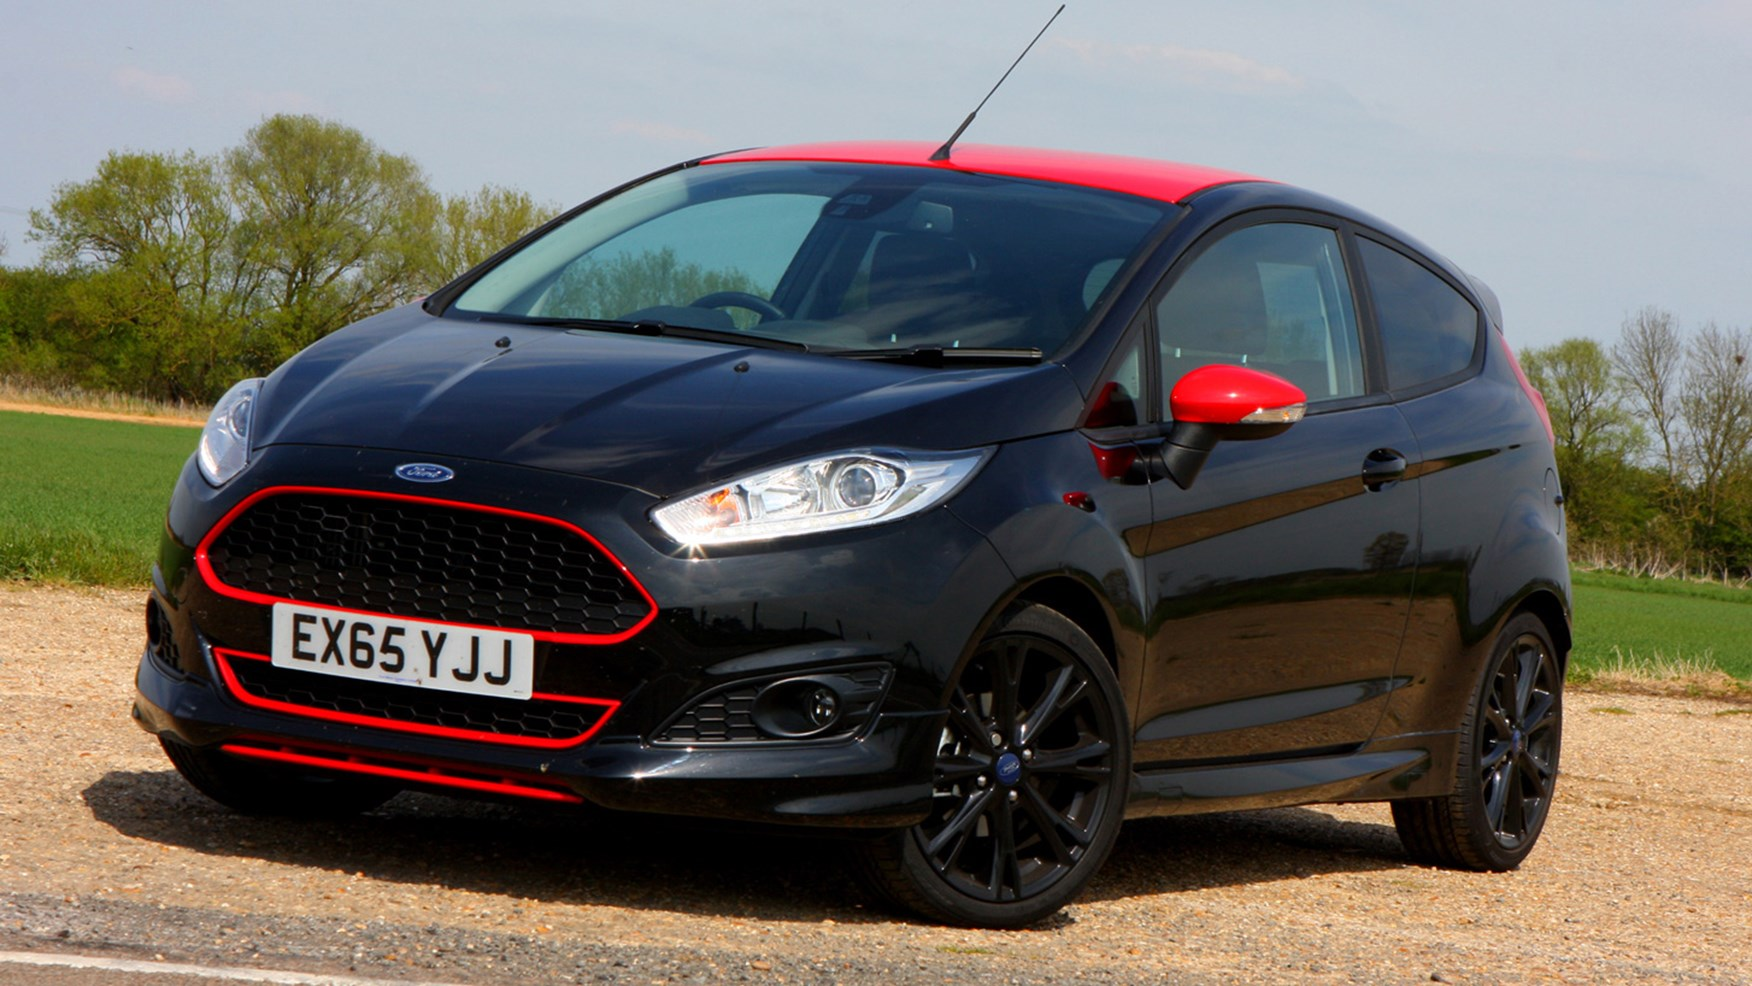 Ford Fiesta 1.0 Ecoboost 140ps ST Line Black Edition (2016) review by CAR Magazine